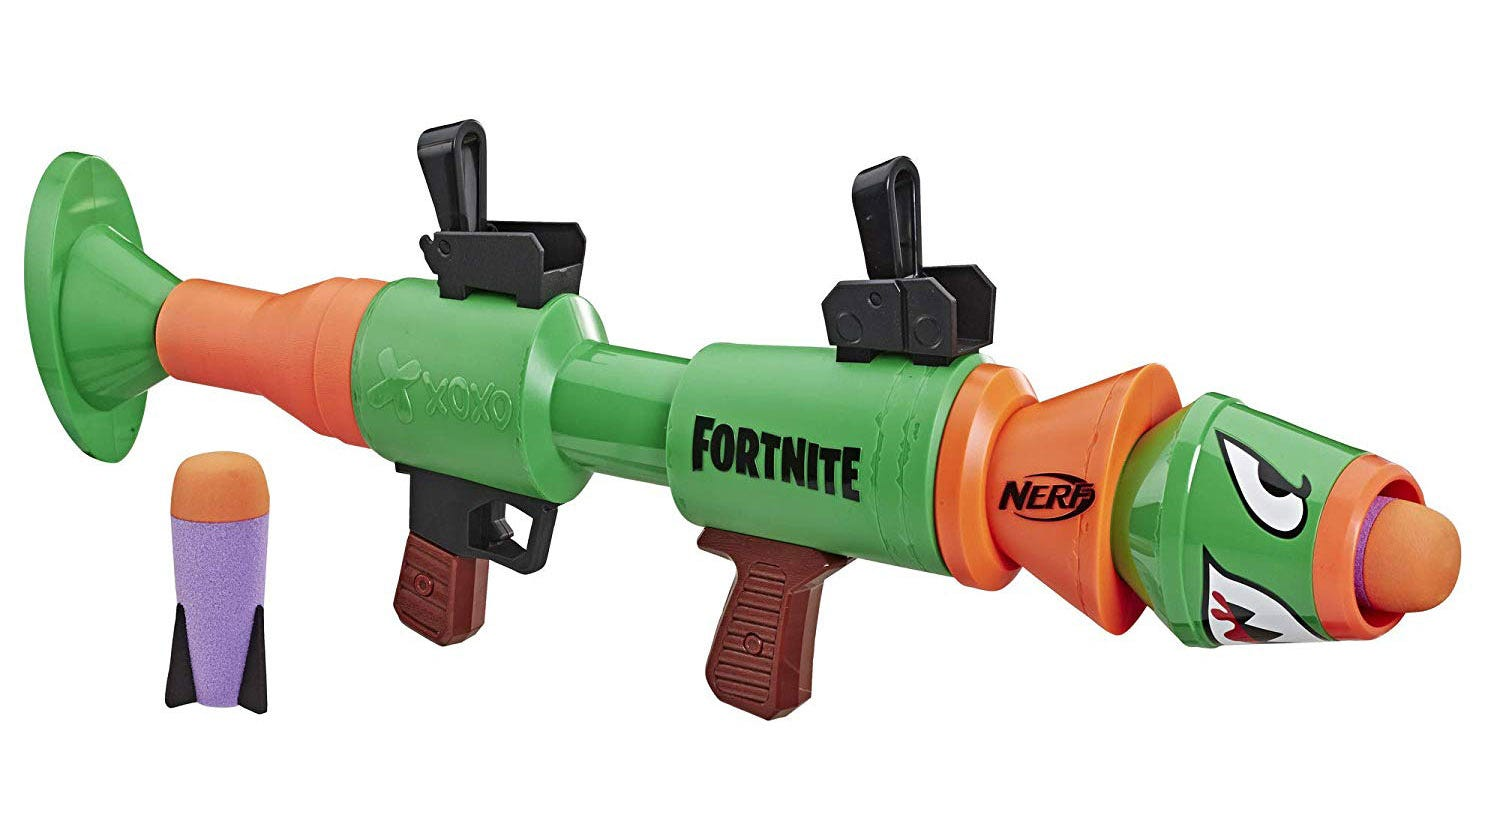 A Fortnite-branded toy rocket launcher.